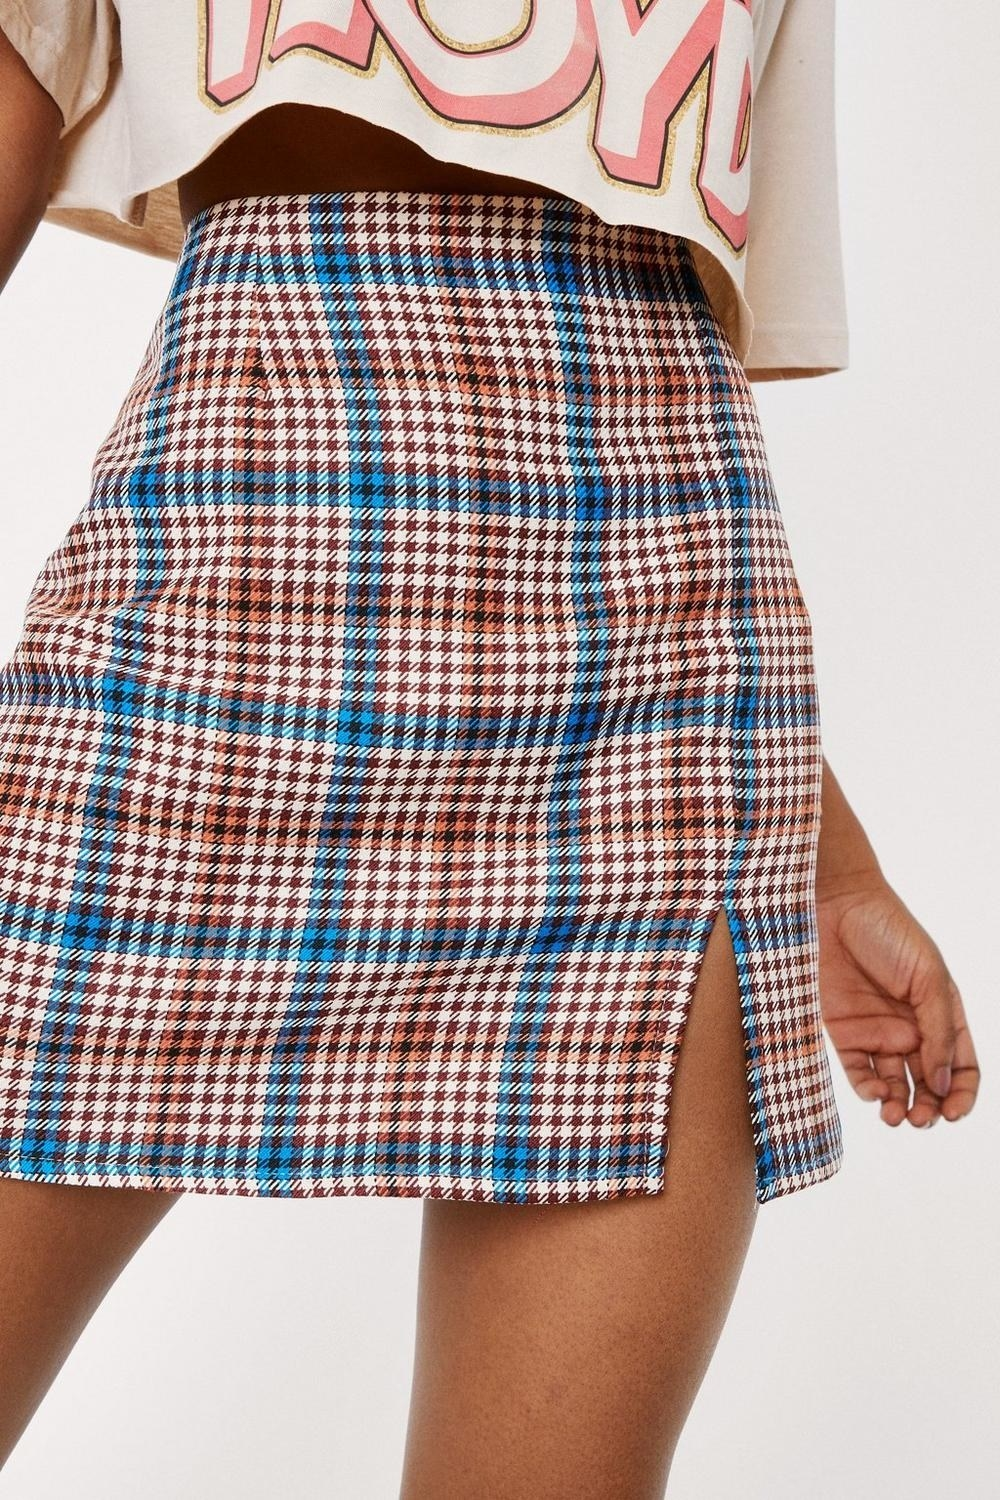 a checkered mini skirt with a slit on the leg